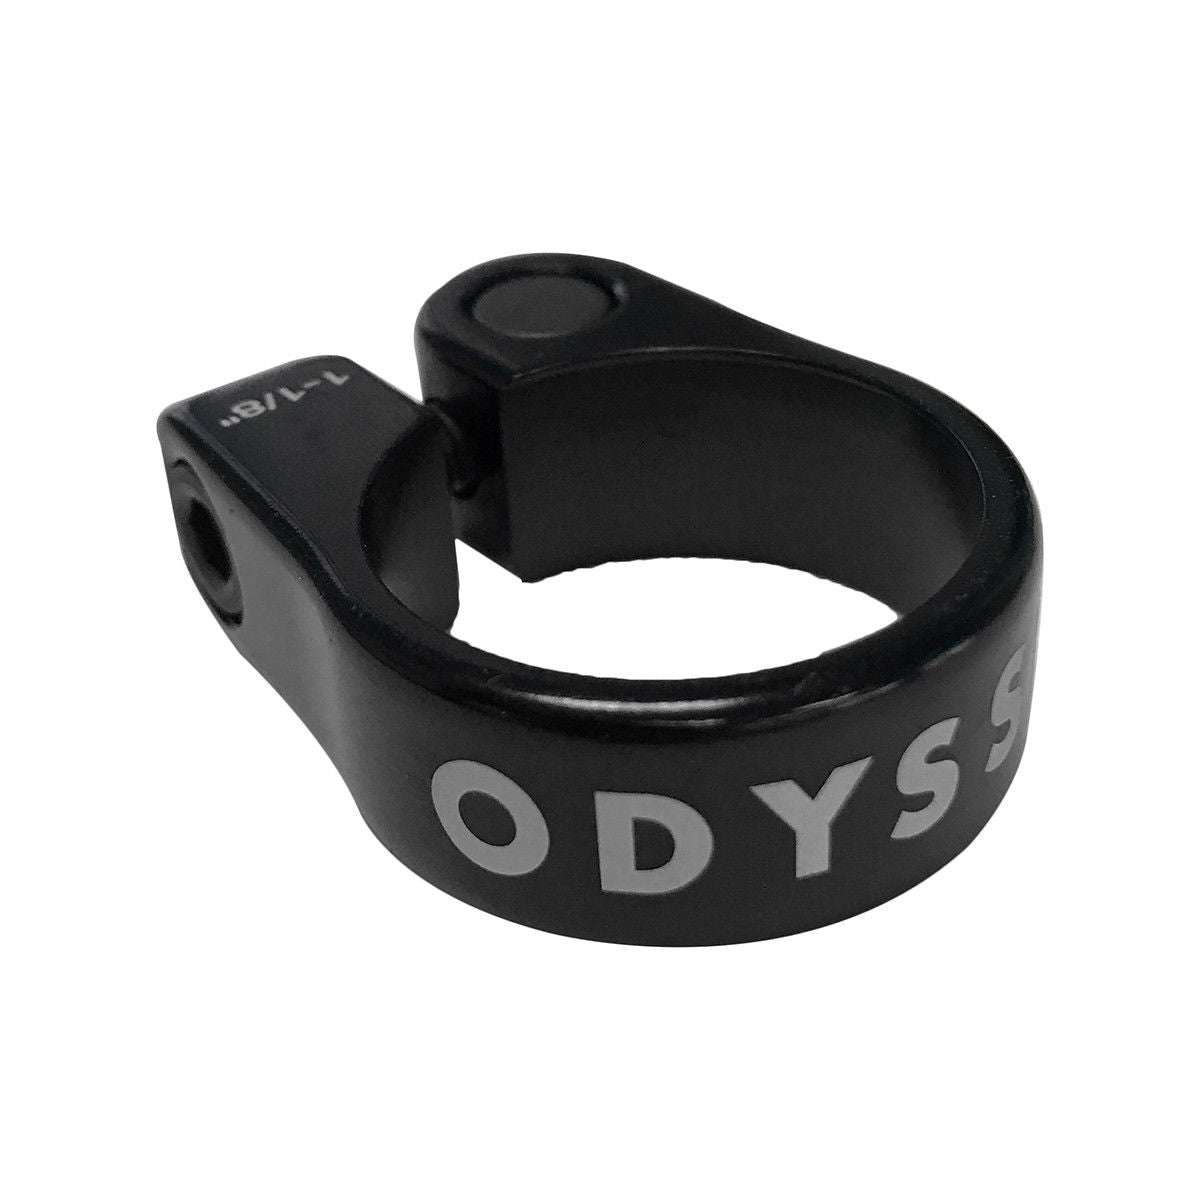 "Odyssey BMX Slim Seat Post Clamp - 28.6mm (1-1/8"") - Black"